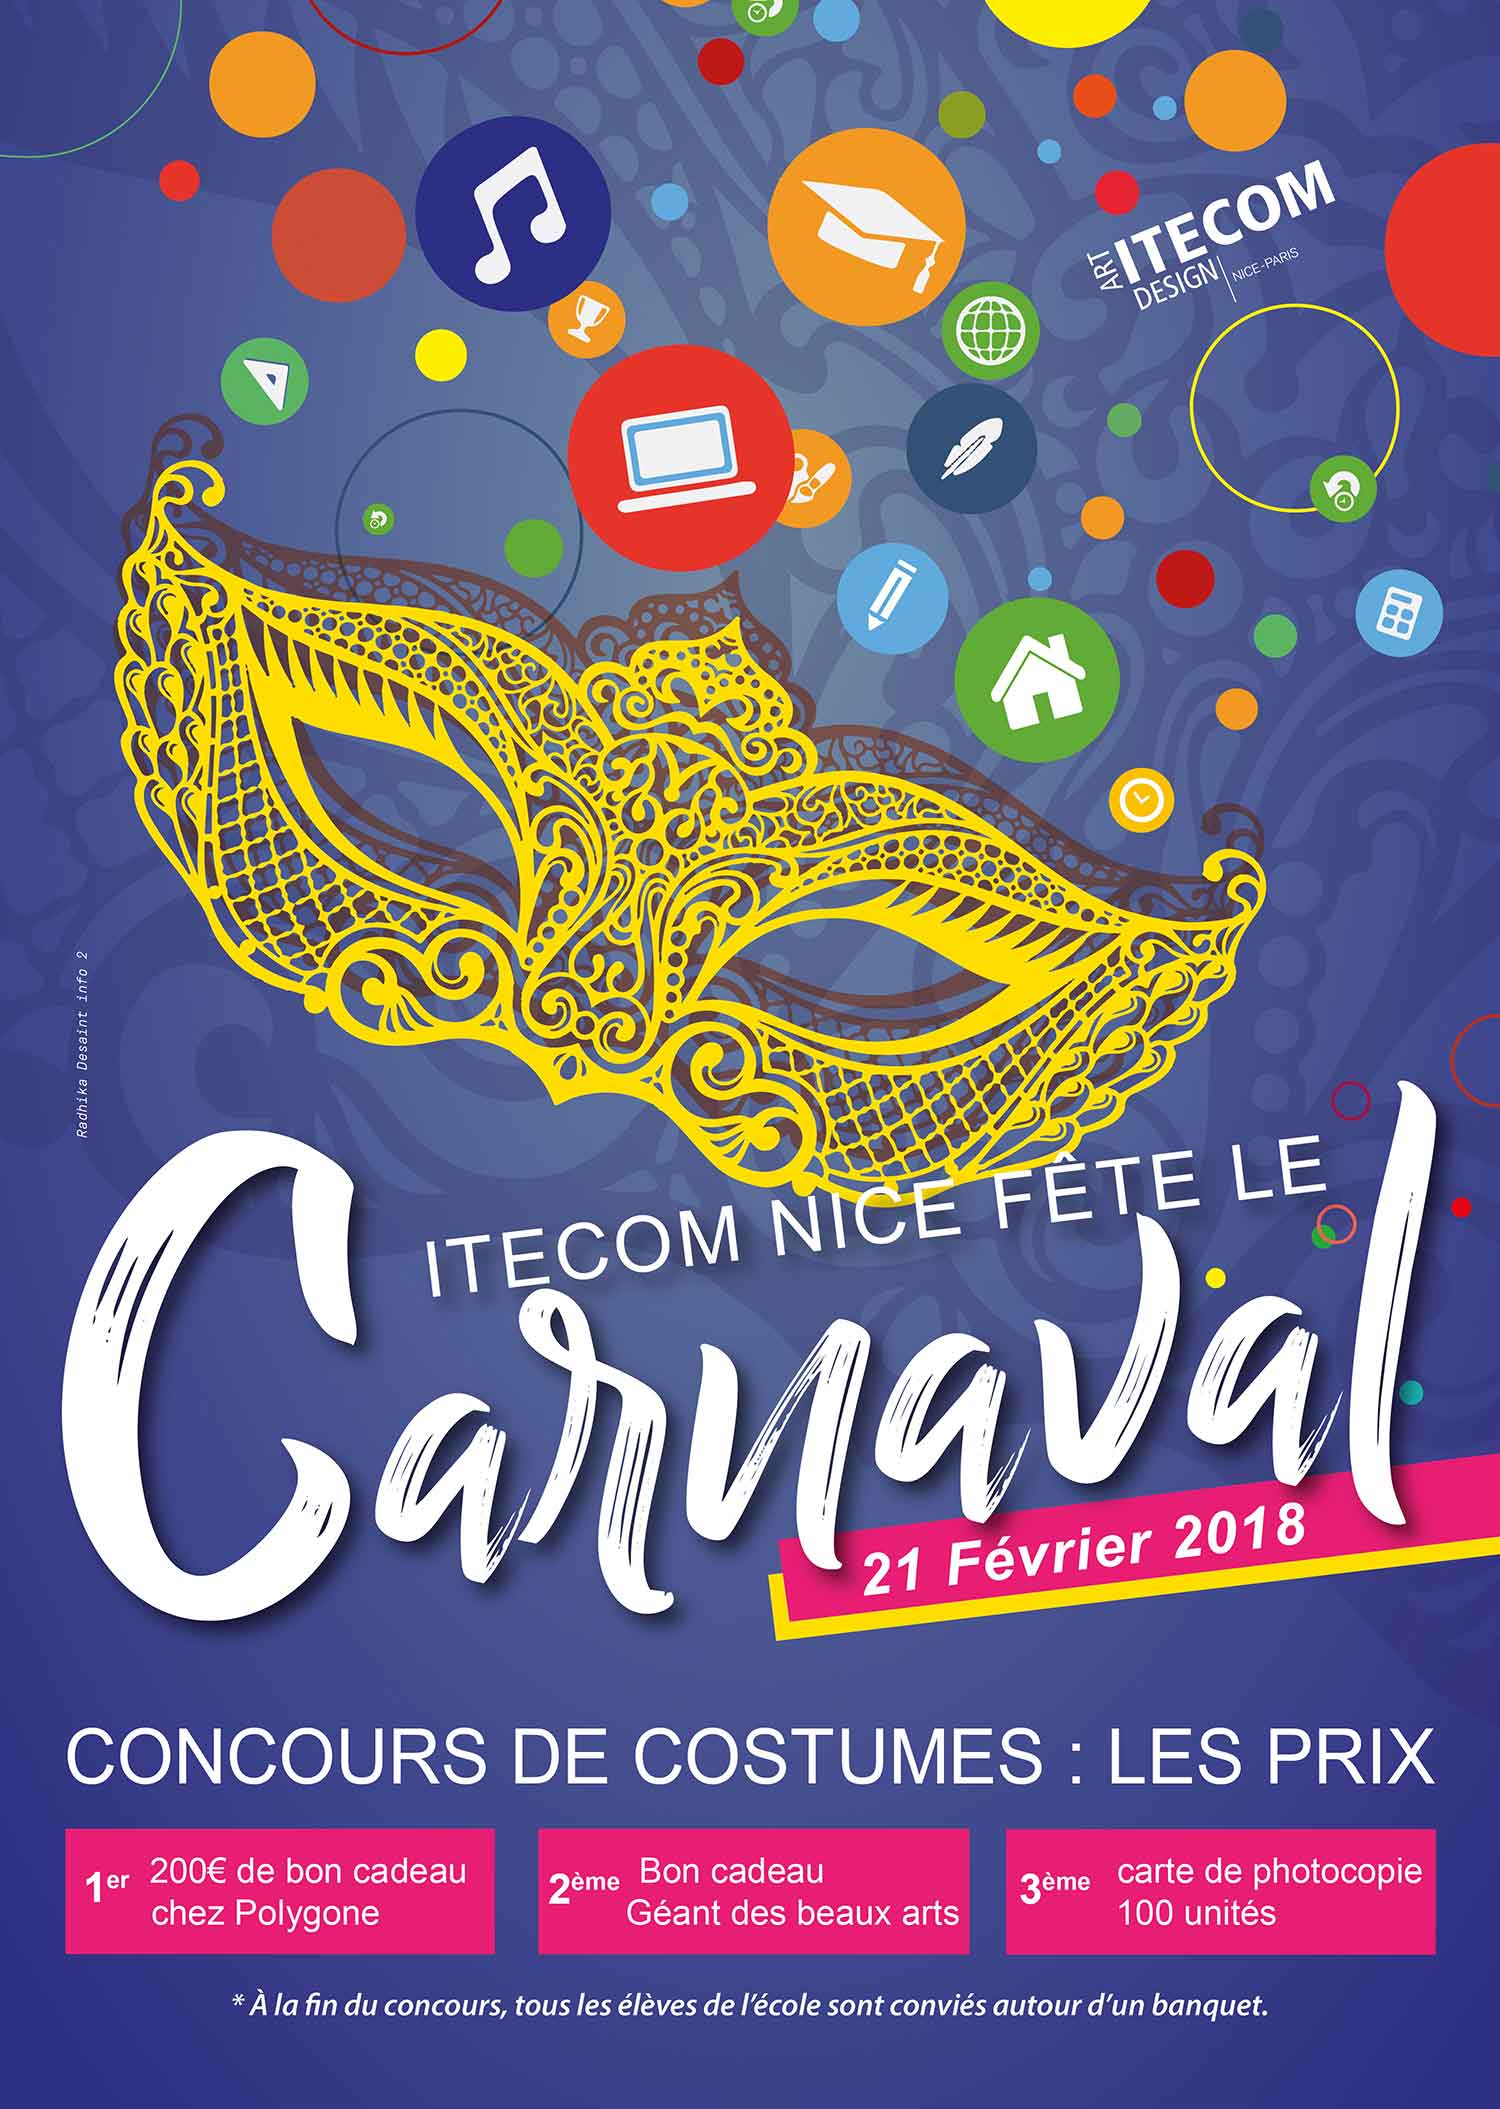 graphiste-radhika-oublicite-nice-affiche-carnaval-itecom-2018